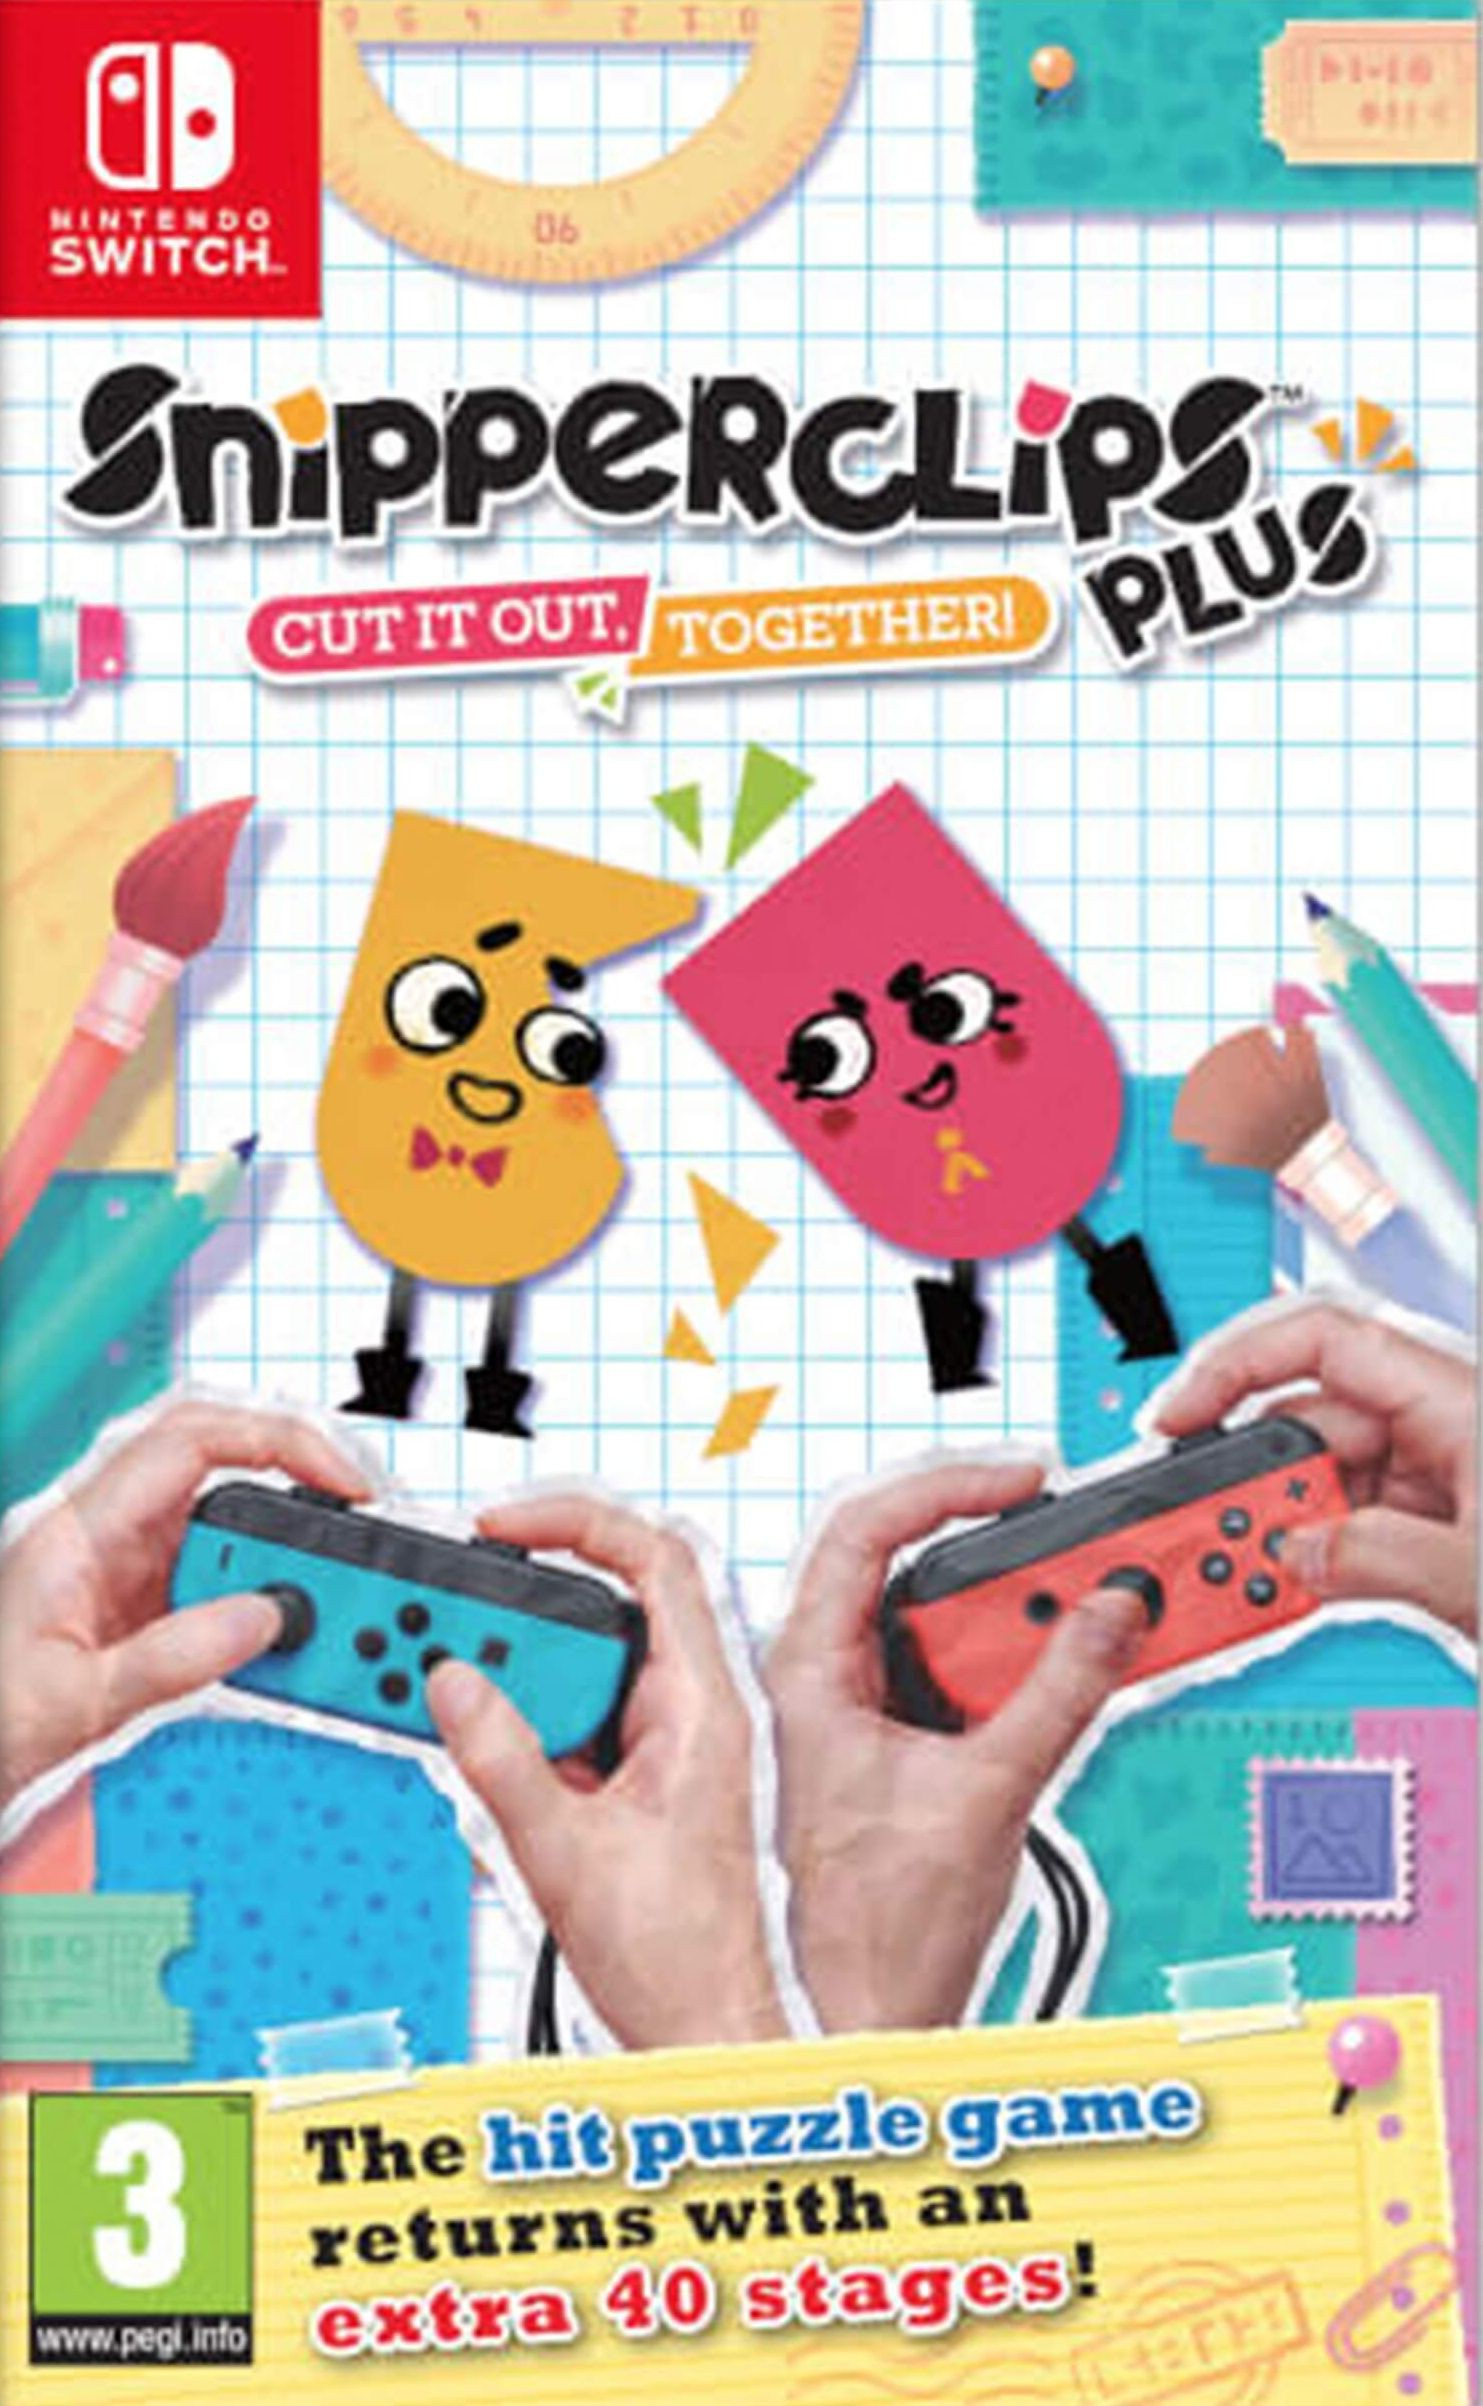 Snipperclips Plus: Cut it out Together! XBOX